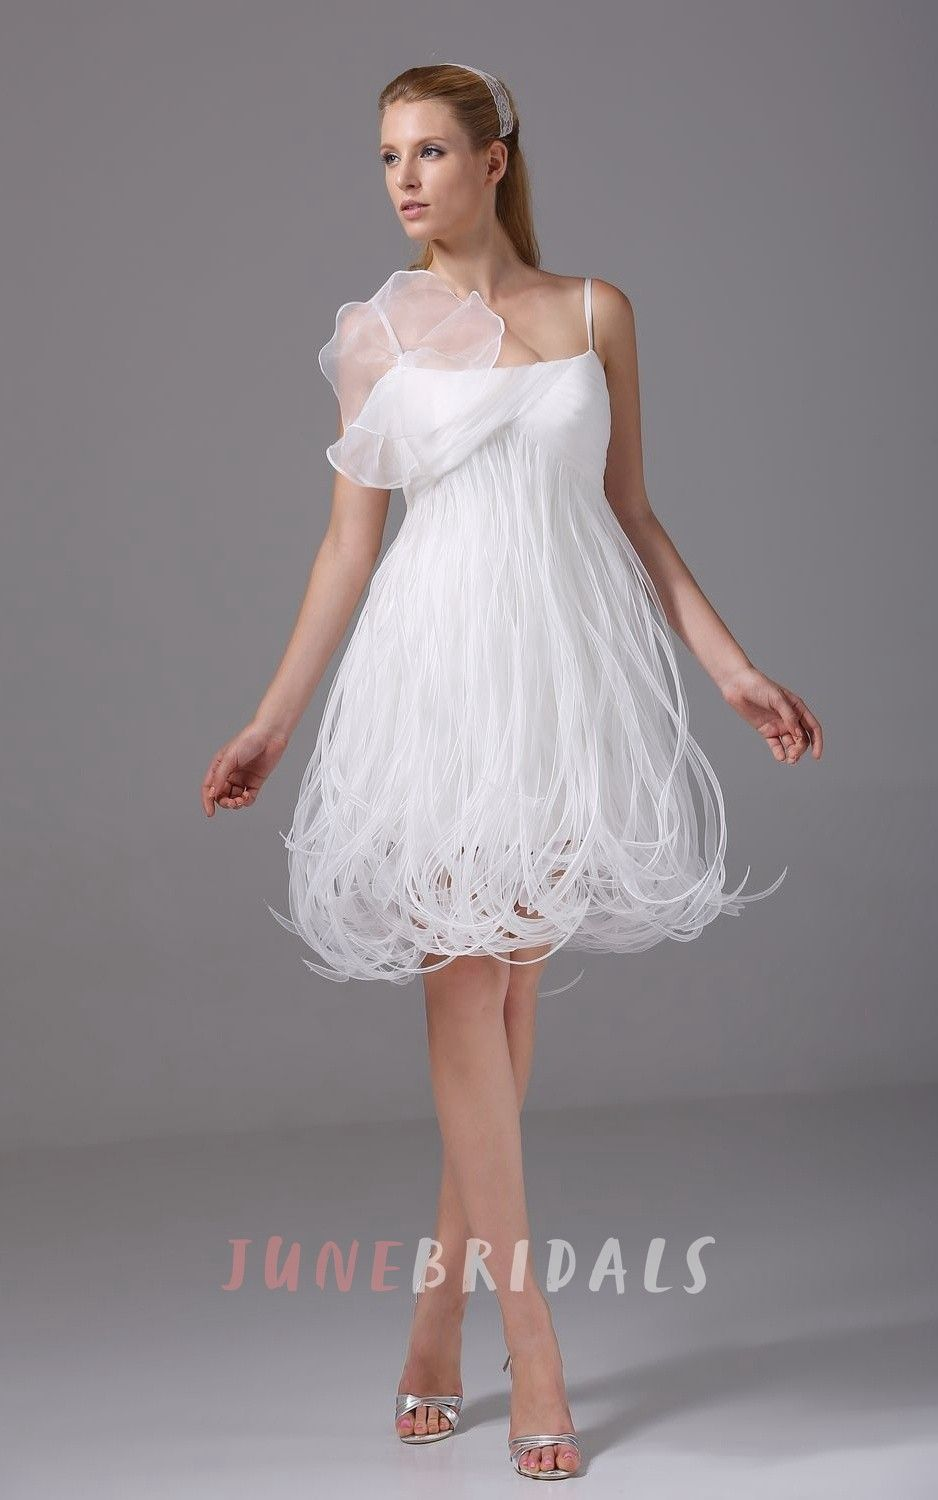 Mini white wedding dress  Lovely SpaghettiStrap KneeLength Dress With Thread Design  Unique